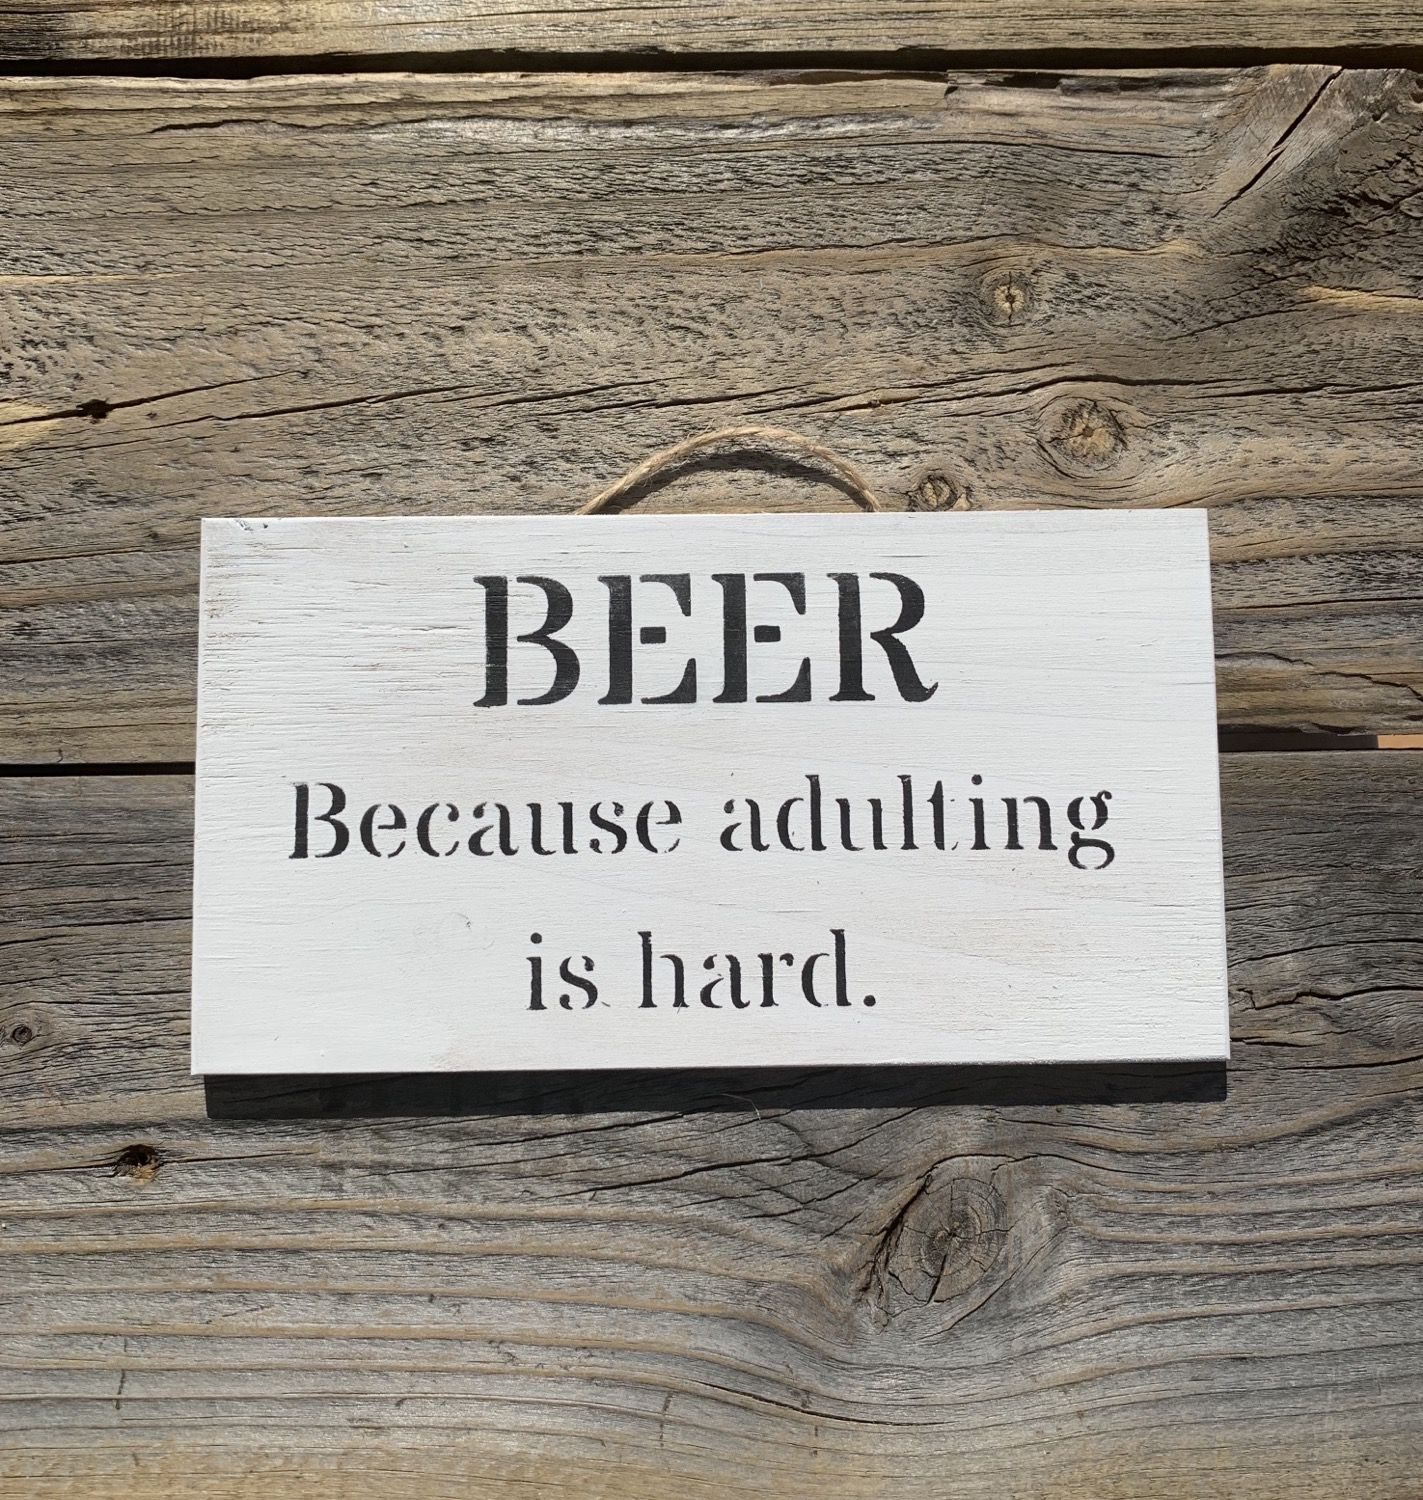 Beer Because Adulting His Hard | Hand painted wooden signs, Beer, Rustic gift wrapping